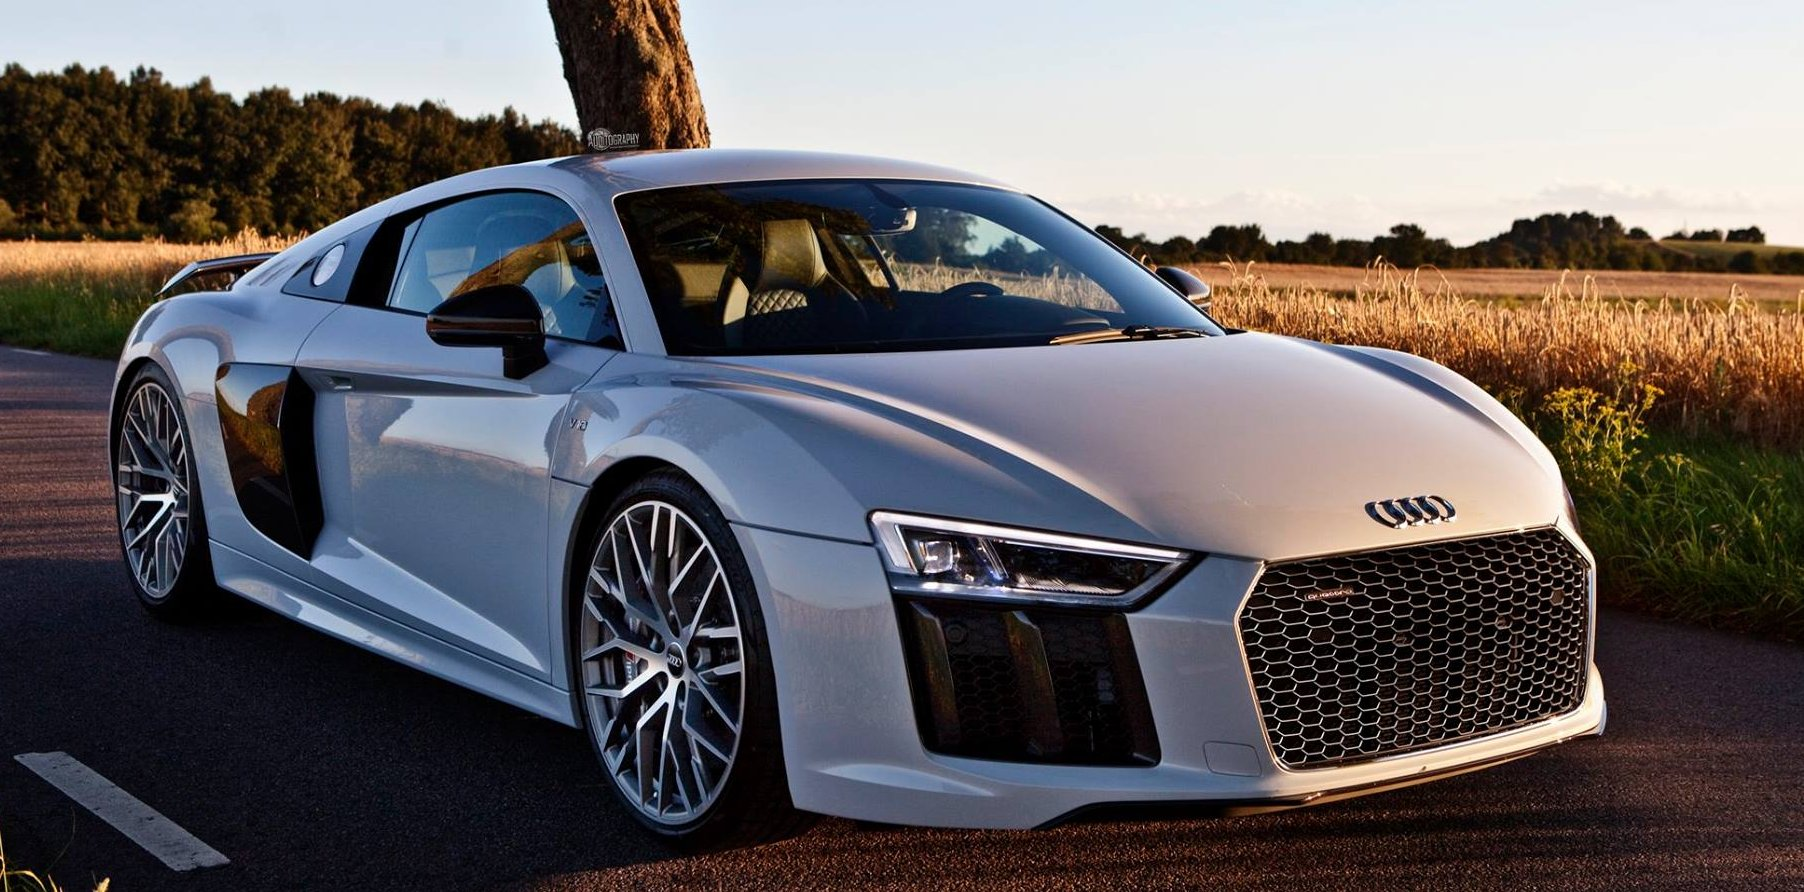 Audi R8 V10 Plus – supercar